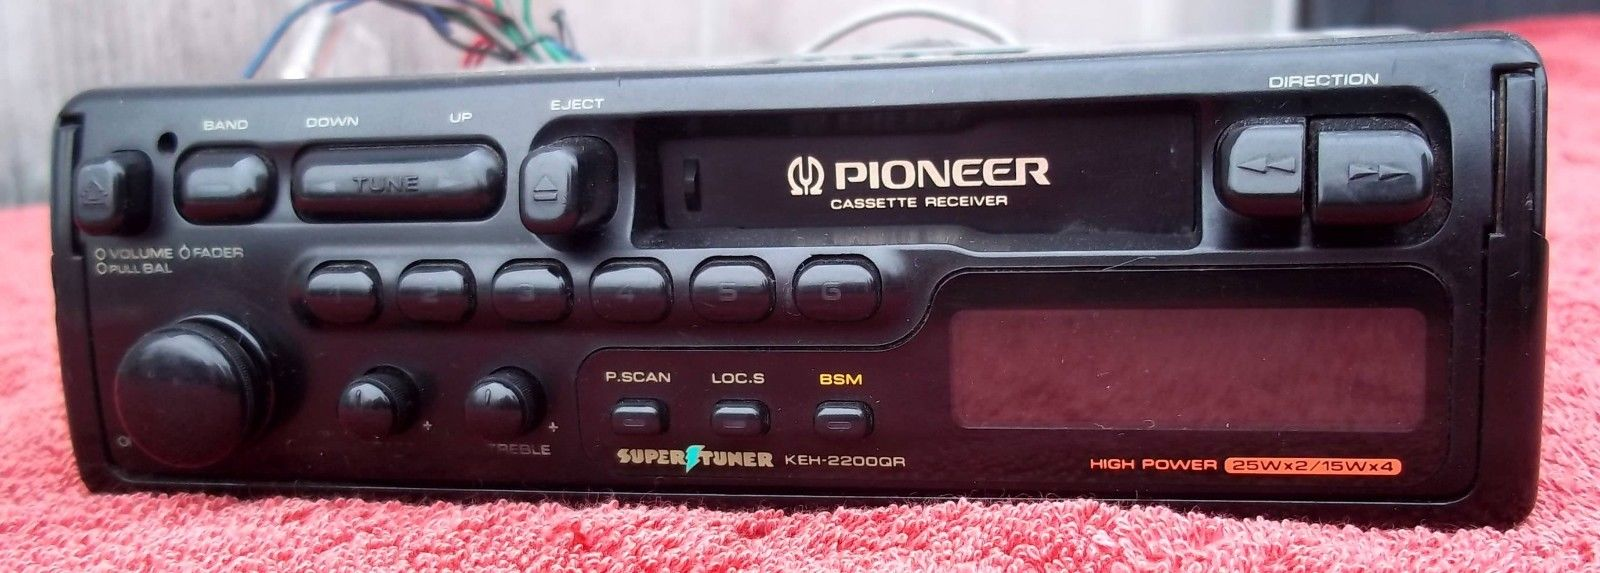 Pioneer Slide out AM/FM Stereo Cassette Receiver - KEH 2200QR - Tested